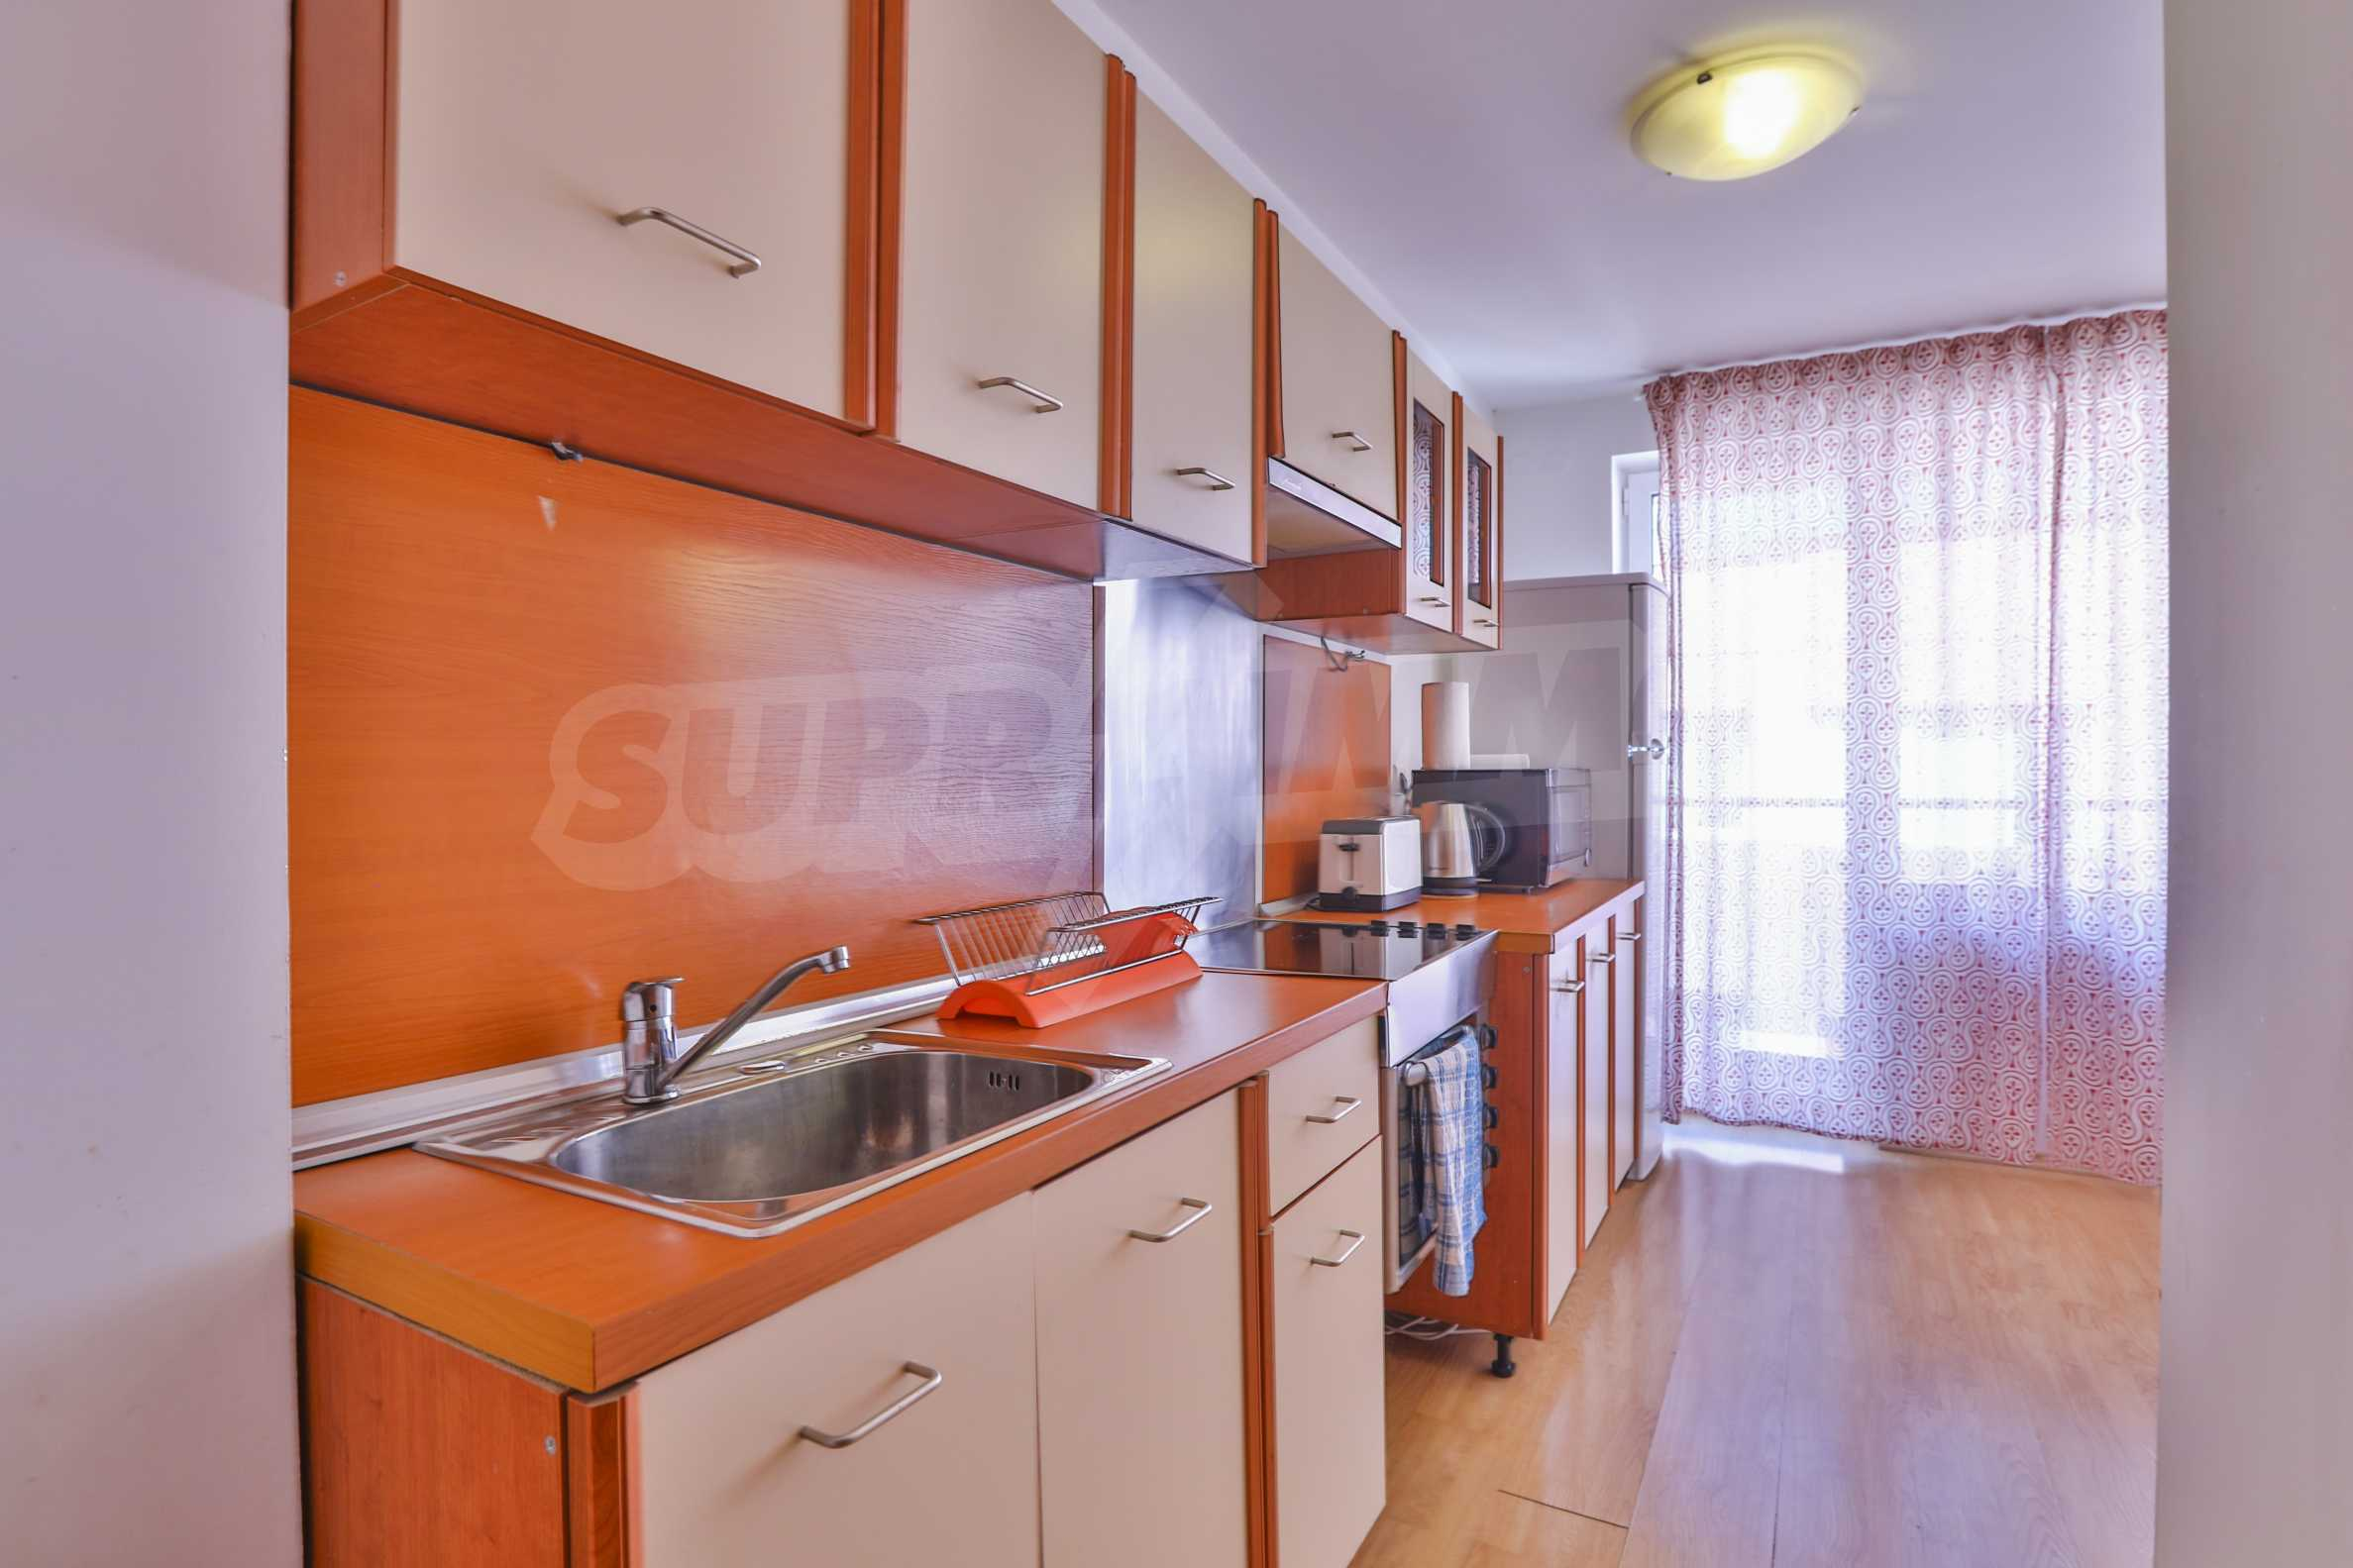 Two-bedroom apartment in the center with high rating on Airbnb 5